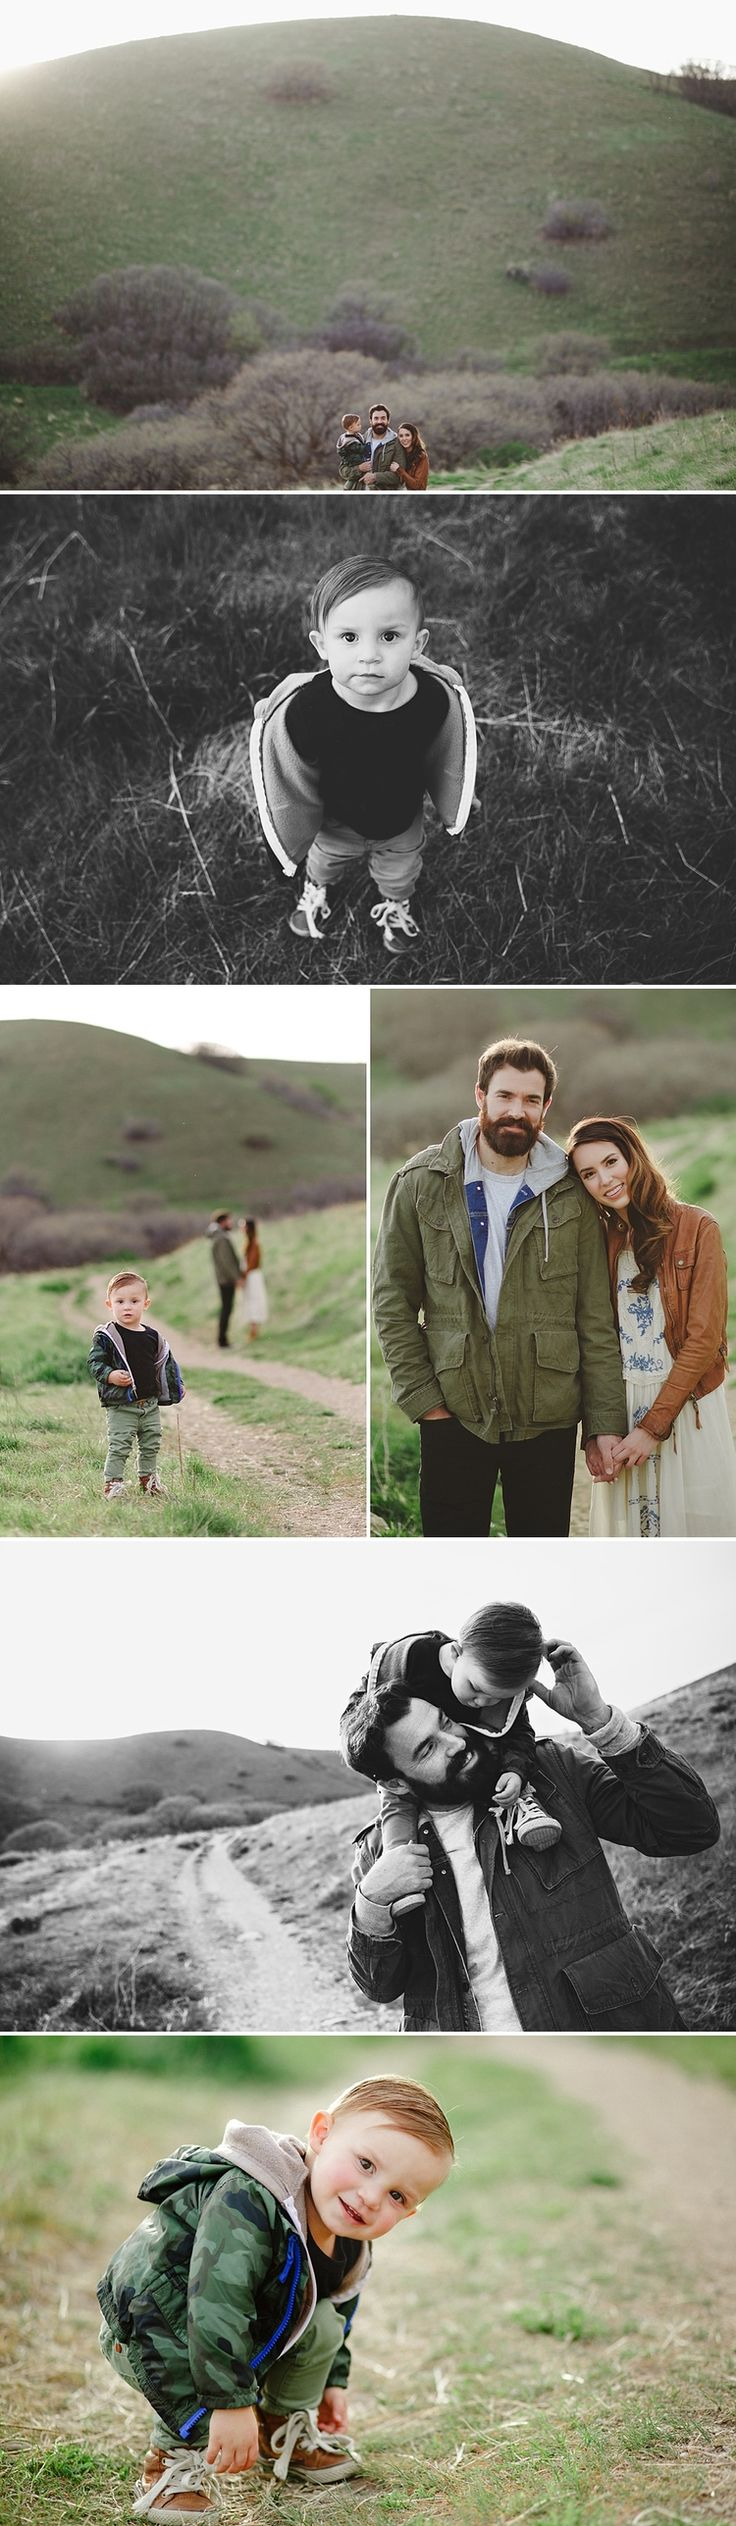 Best 25 people photography ideas on pinterest portrait photography - Best 25 Family Photos Ideas On Pinterest Family Pictures Family Photo And Family Photography